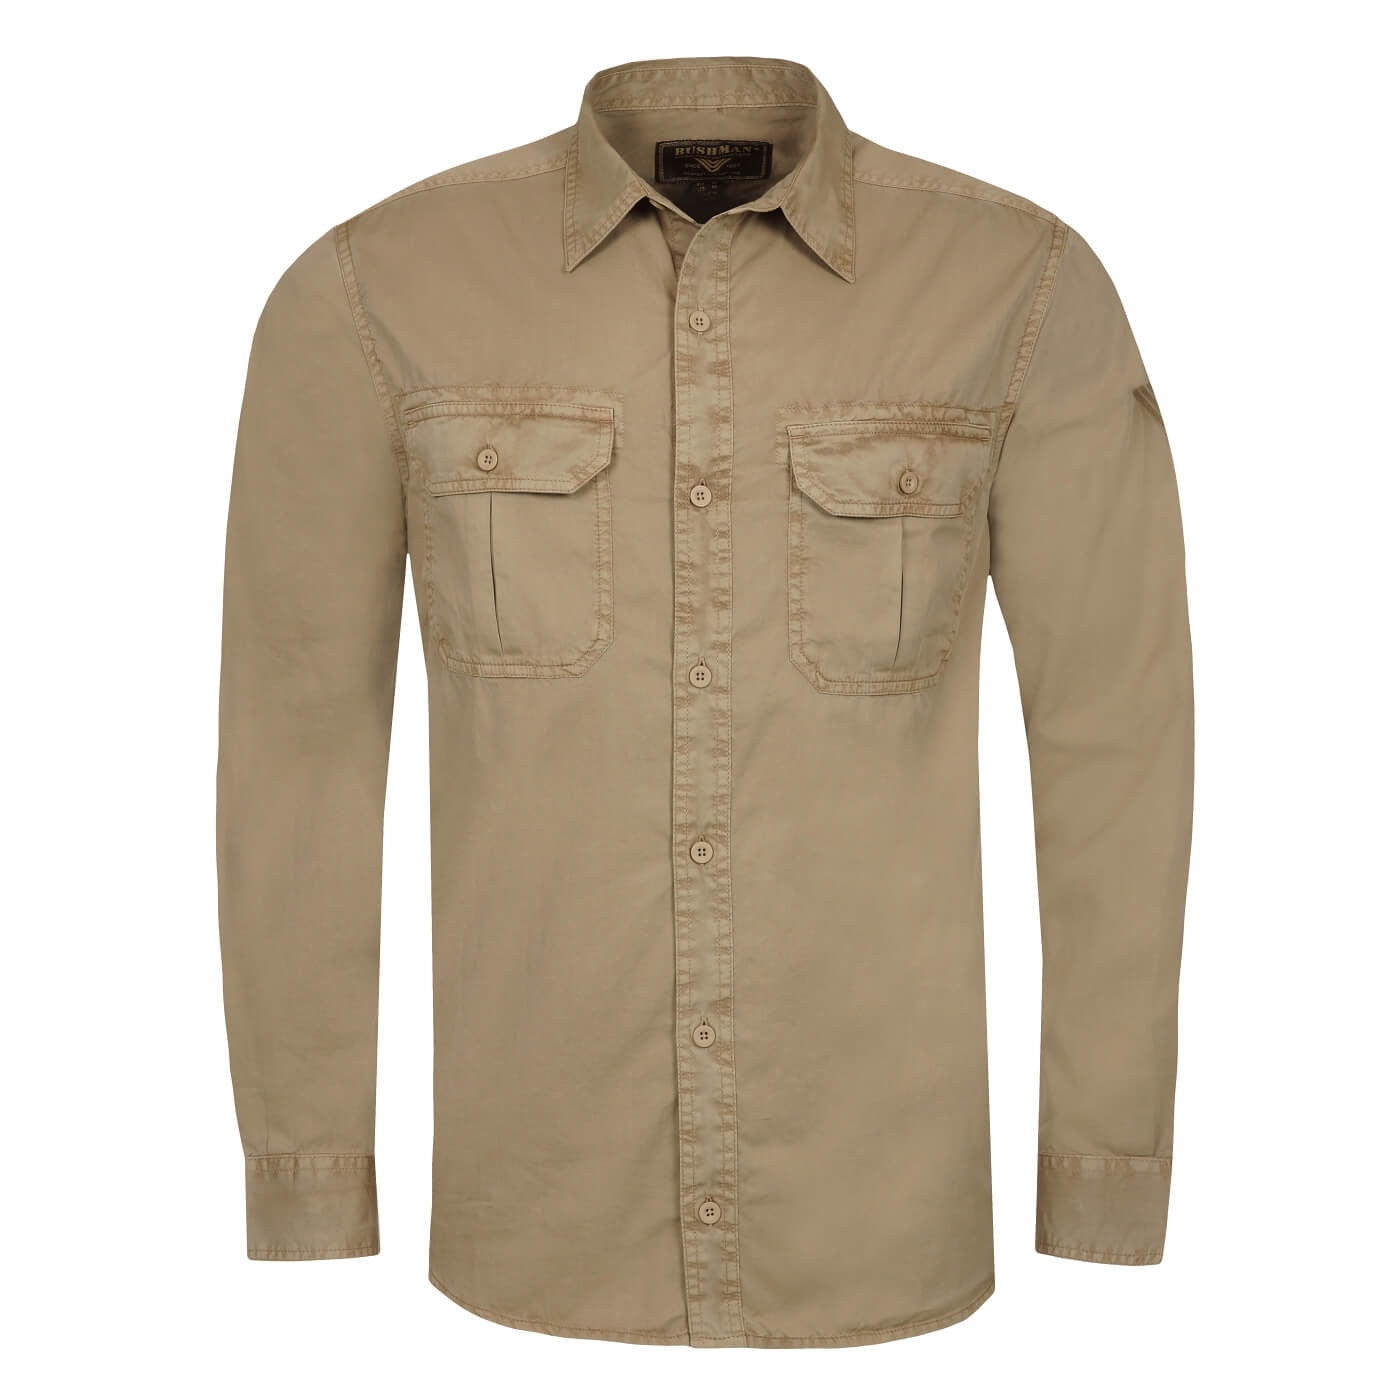 BUSHMANSHOP ROGERS MEN'S KHAKI BROWN COTTON LONG SLEEVE SAFARI SHIRT